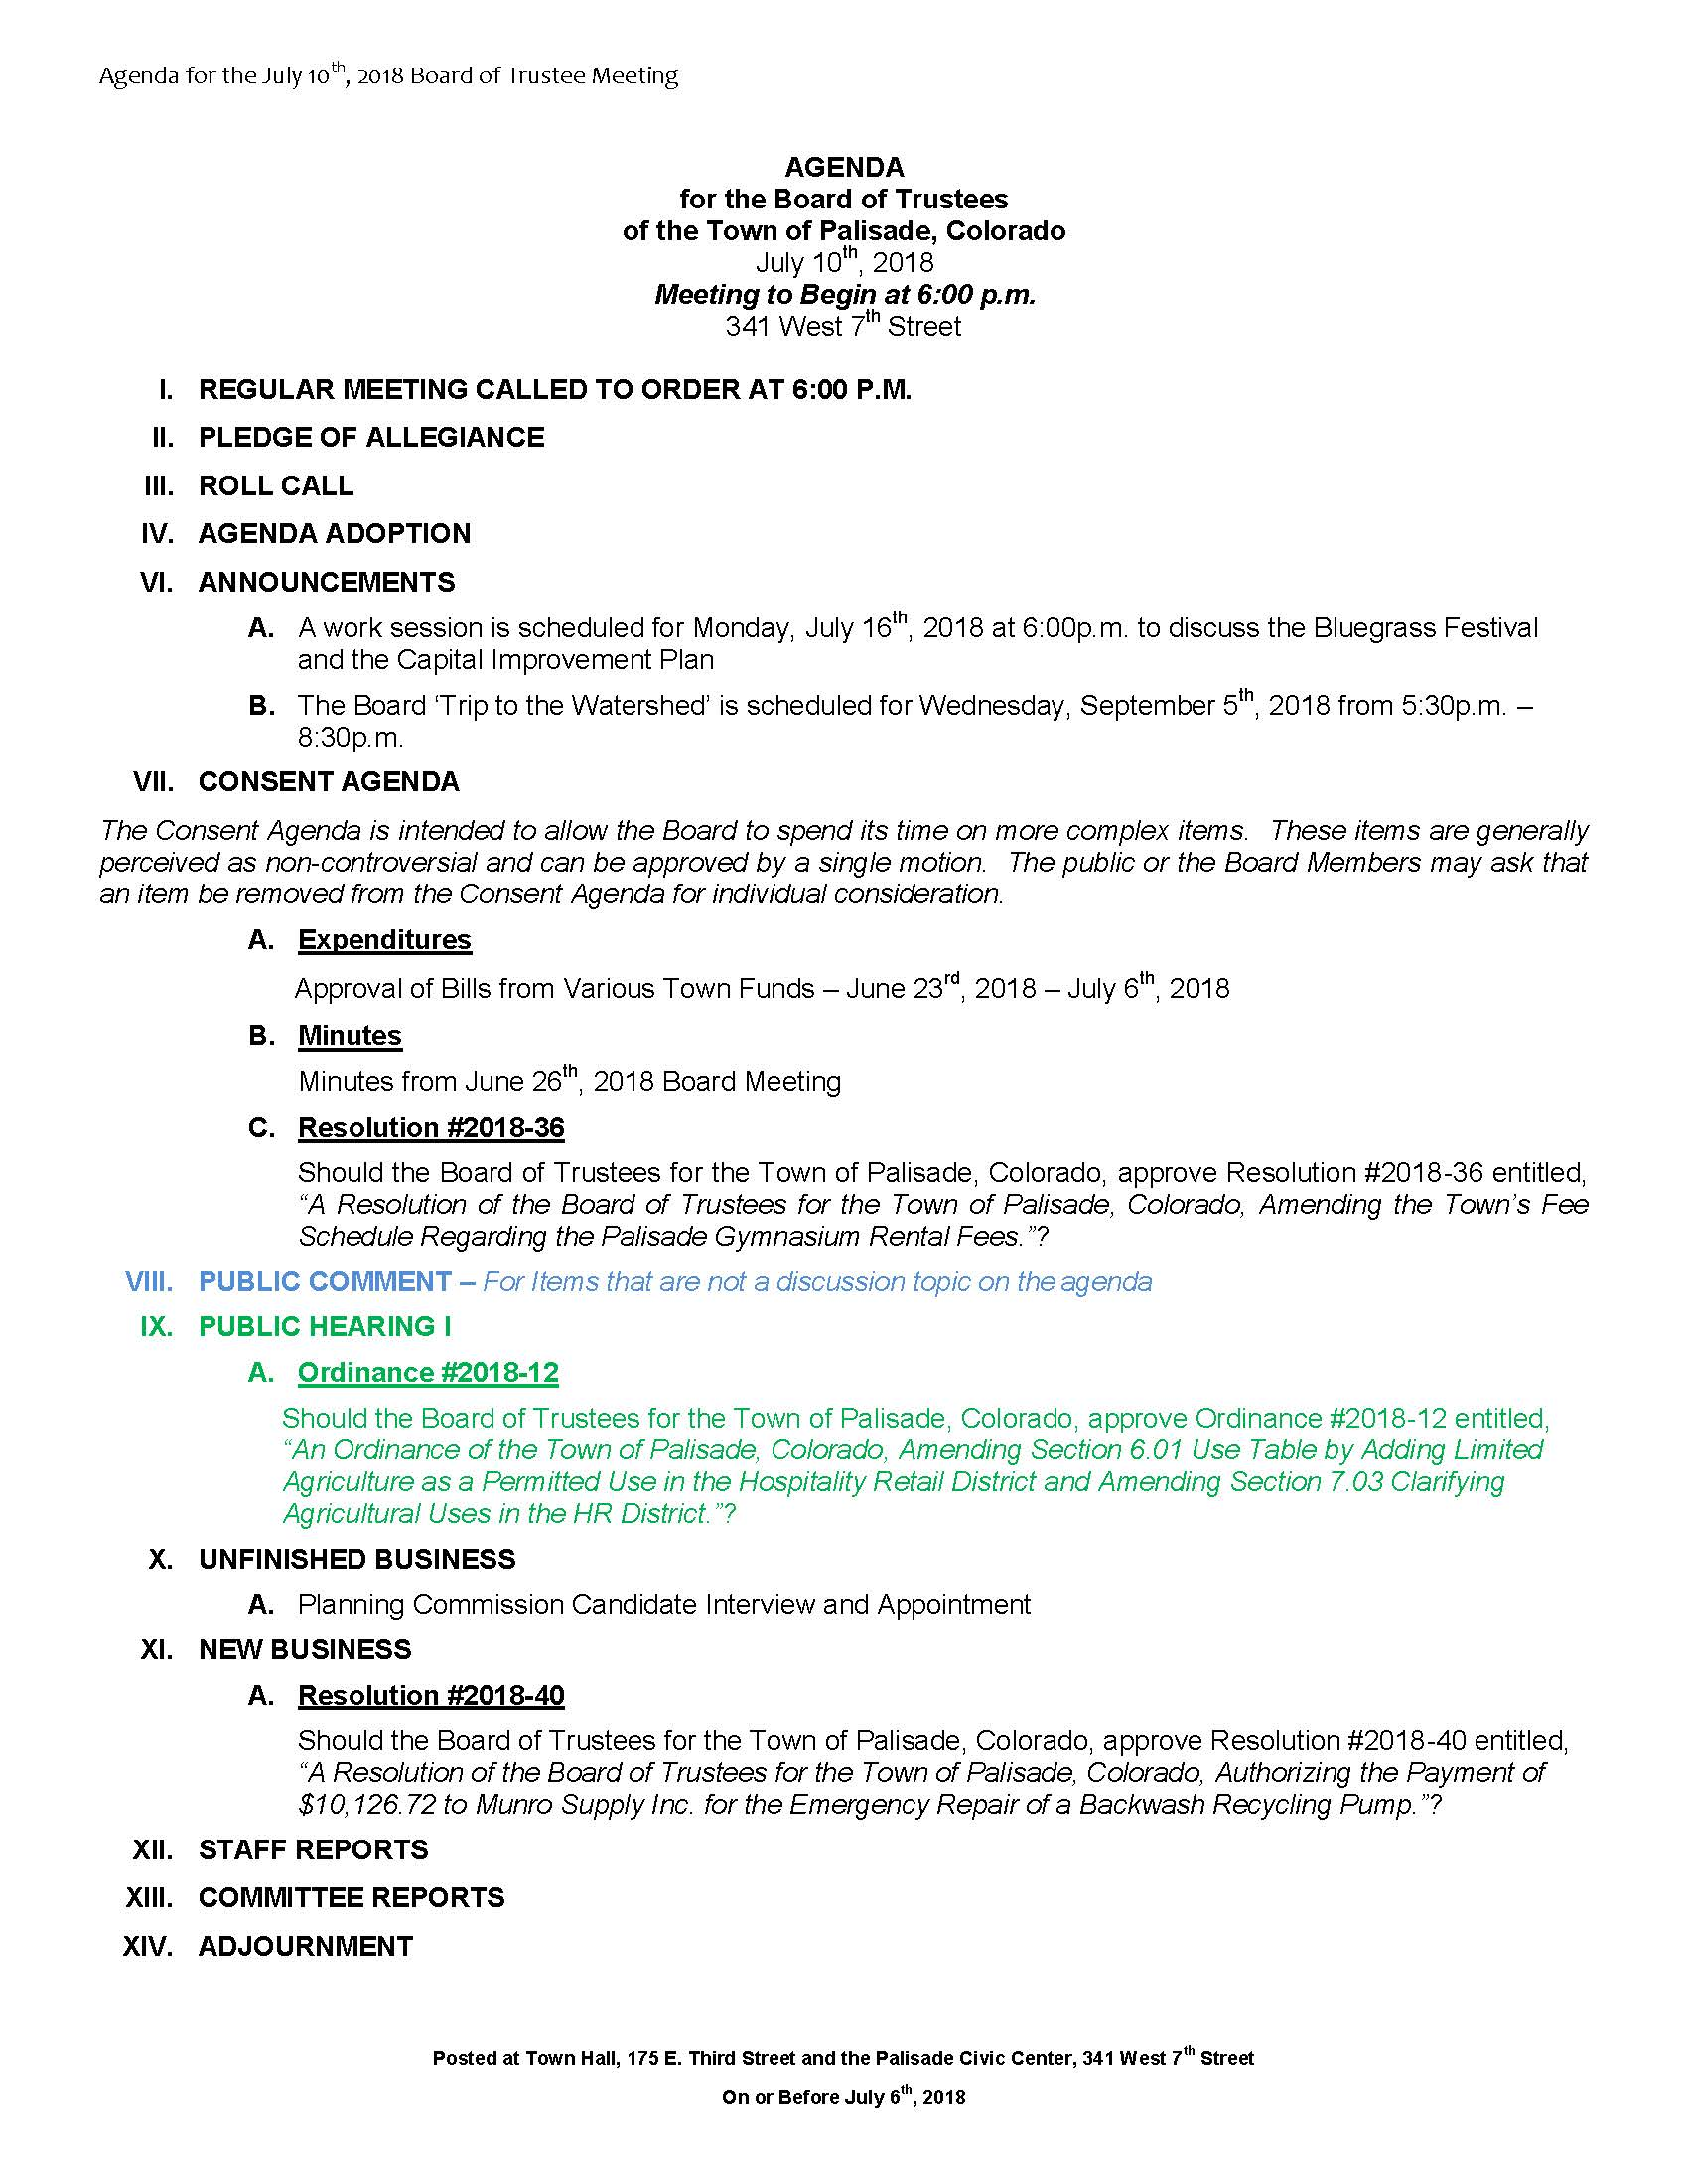 July 10th 2018 Board Meeting Agenda